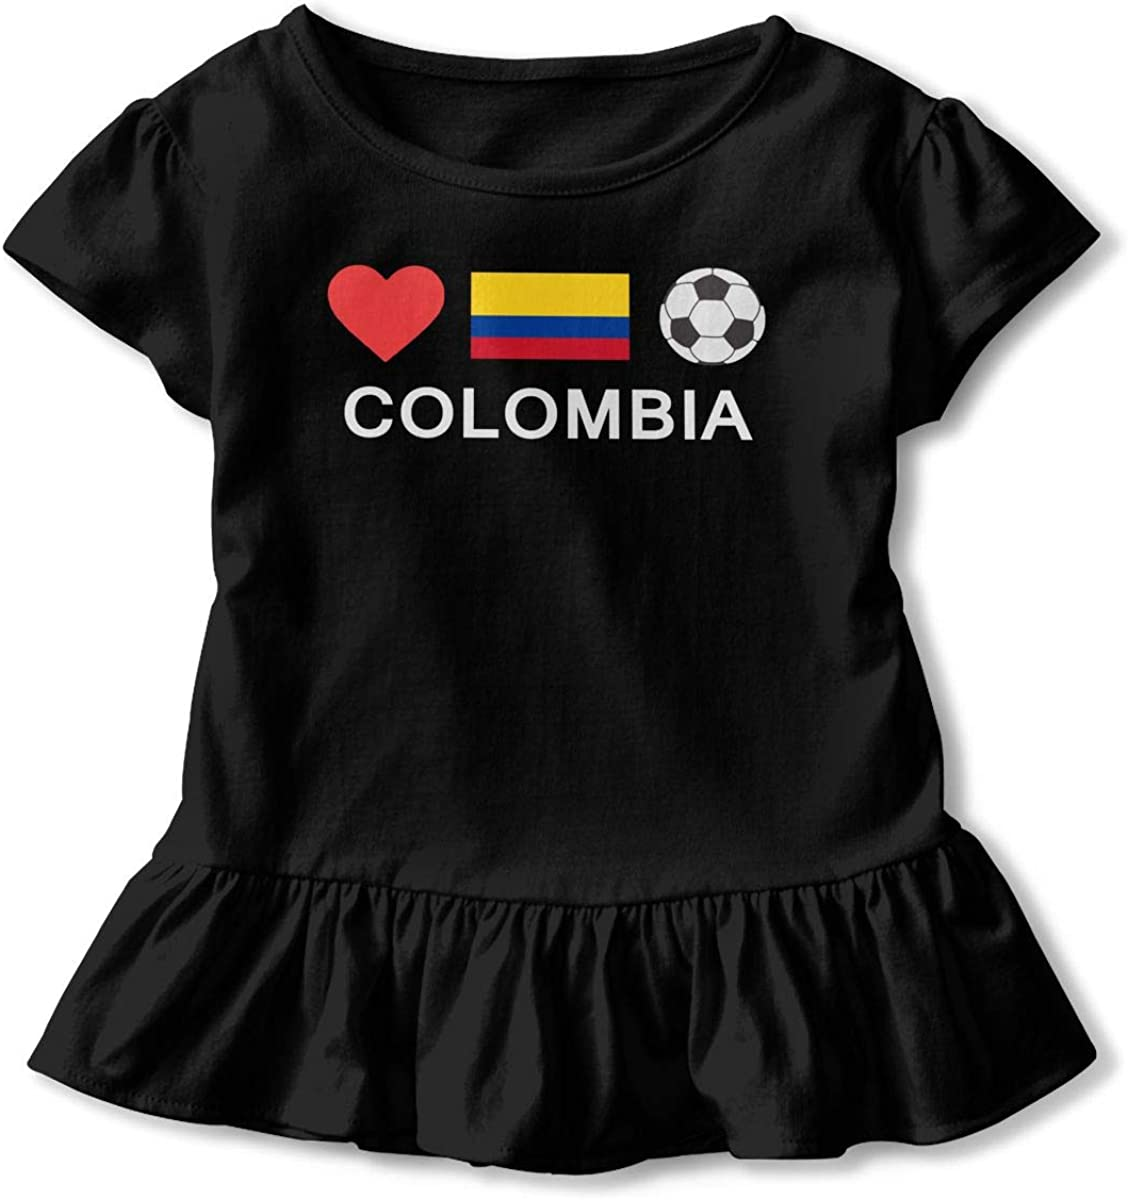 Zi7J9q-0 Short-Sleeve Colombia Football Colombia Soccer Shirts for Children Casual Tunic Tops with Falbala 2-6T